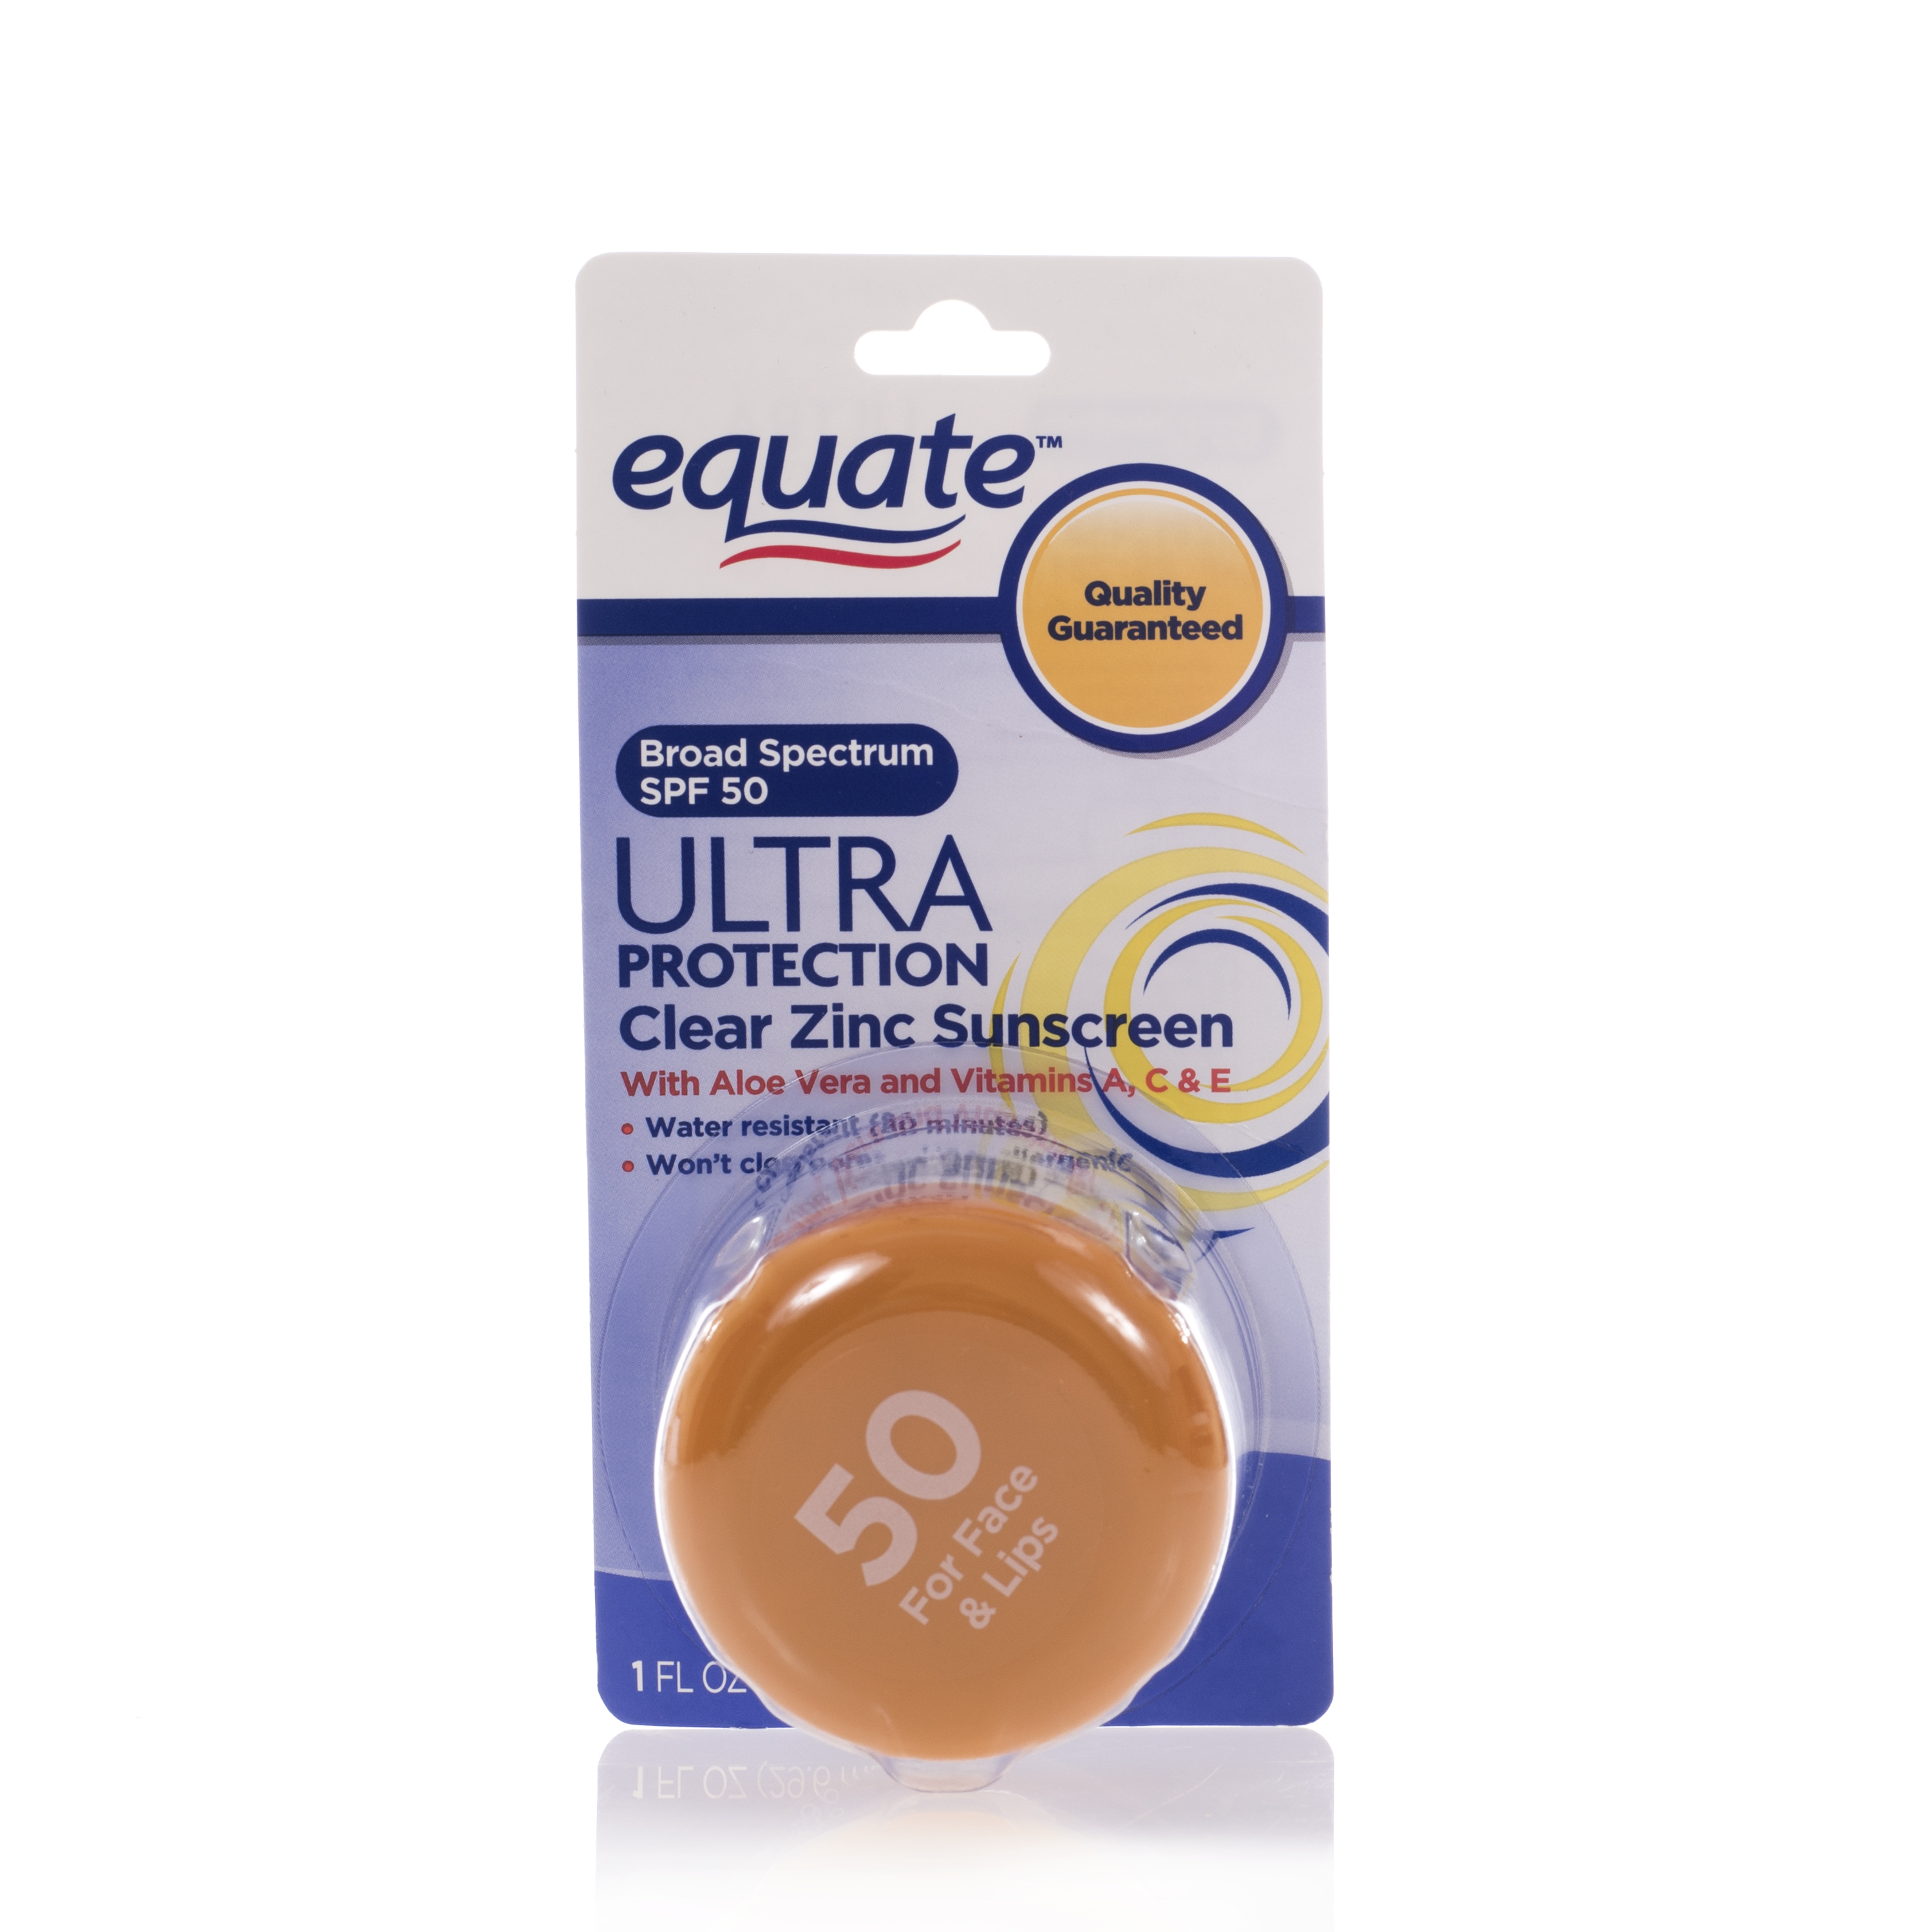 Equate Ultra Spectrum Clear Zinc Sunscreen For Face & Lips, SPF 50